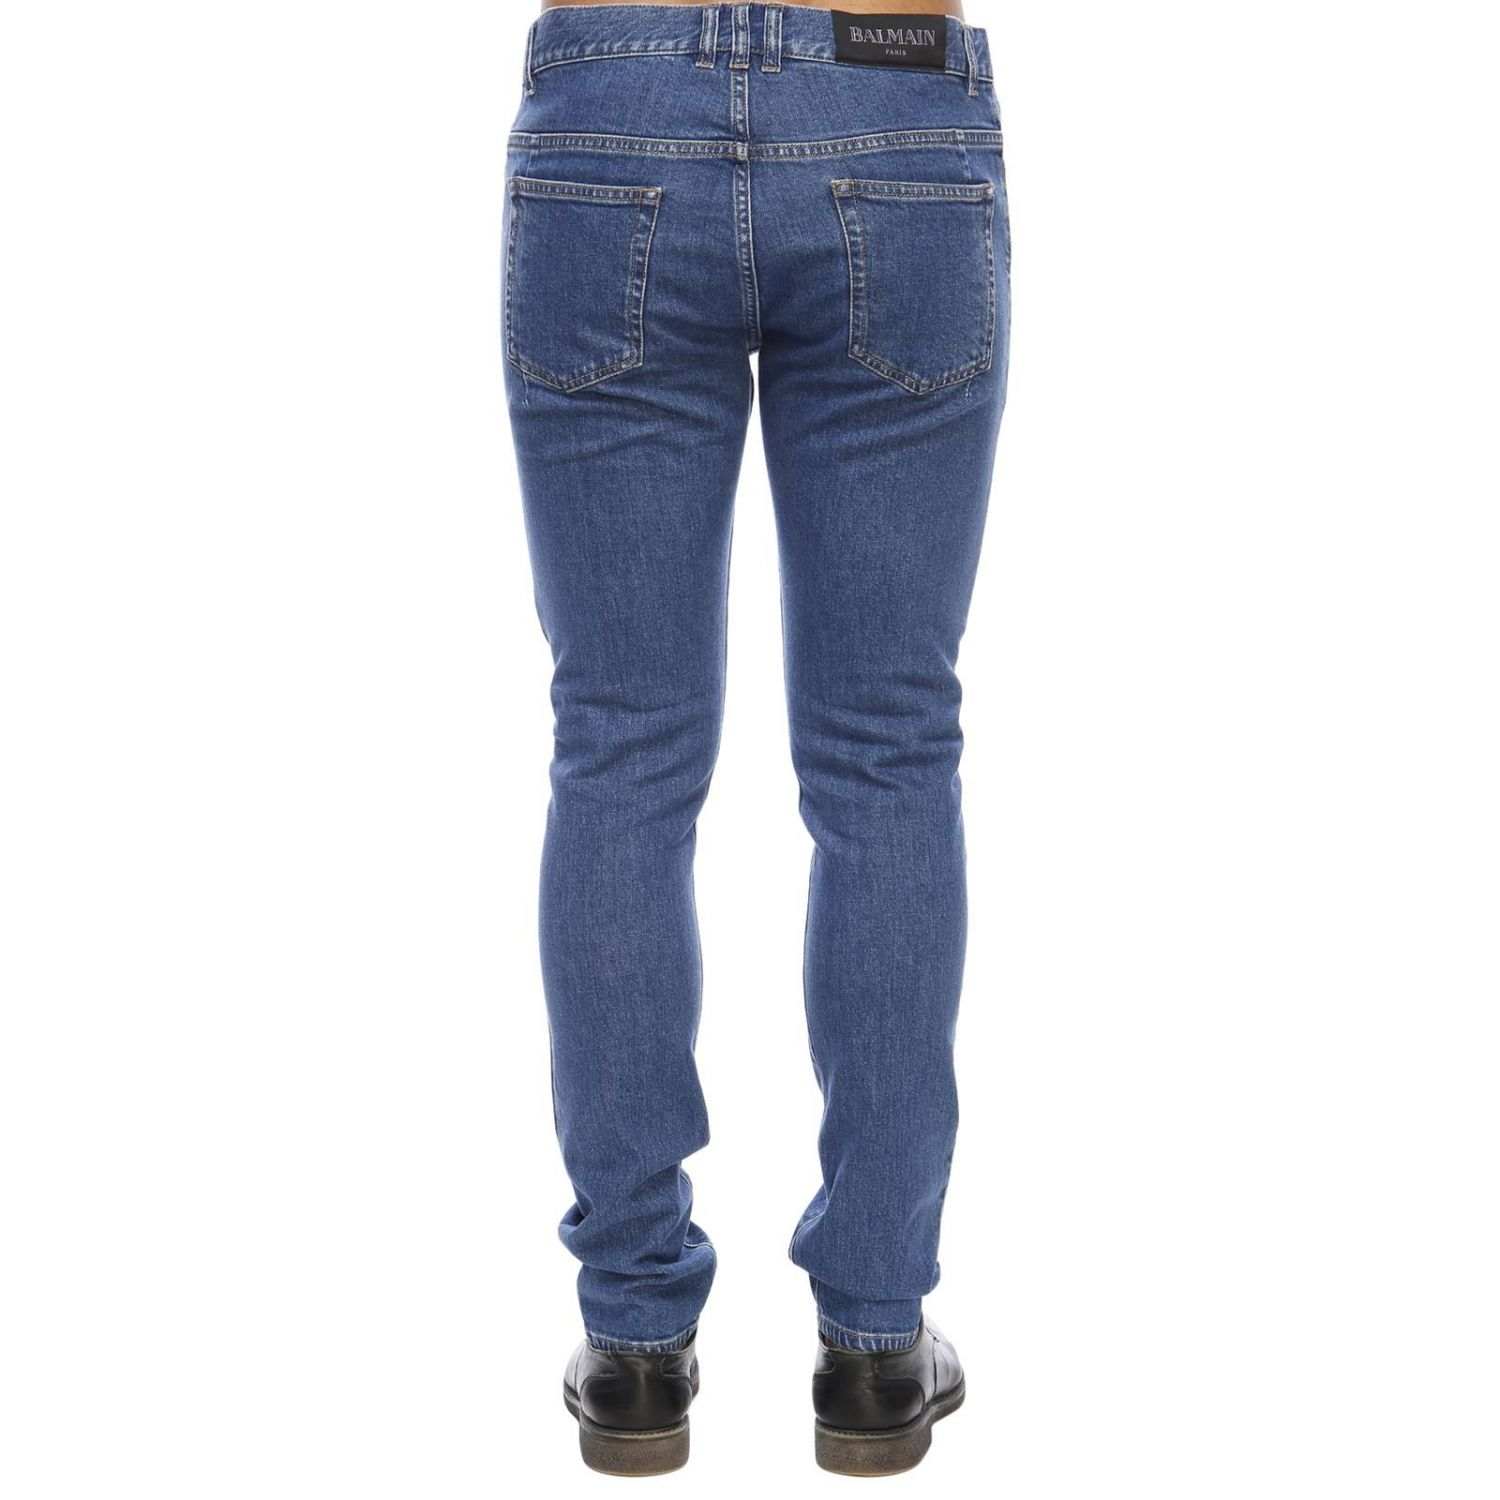 Jeans men Balmain denim 3